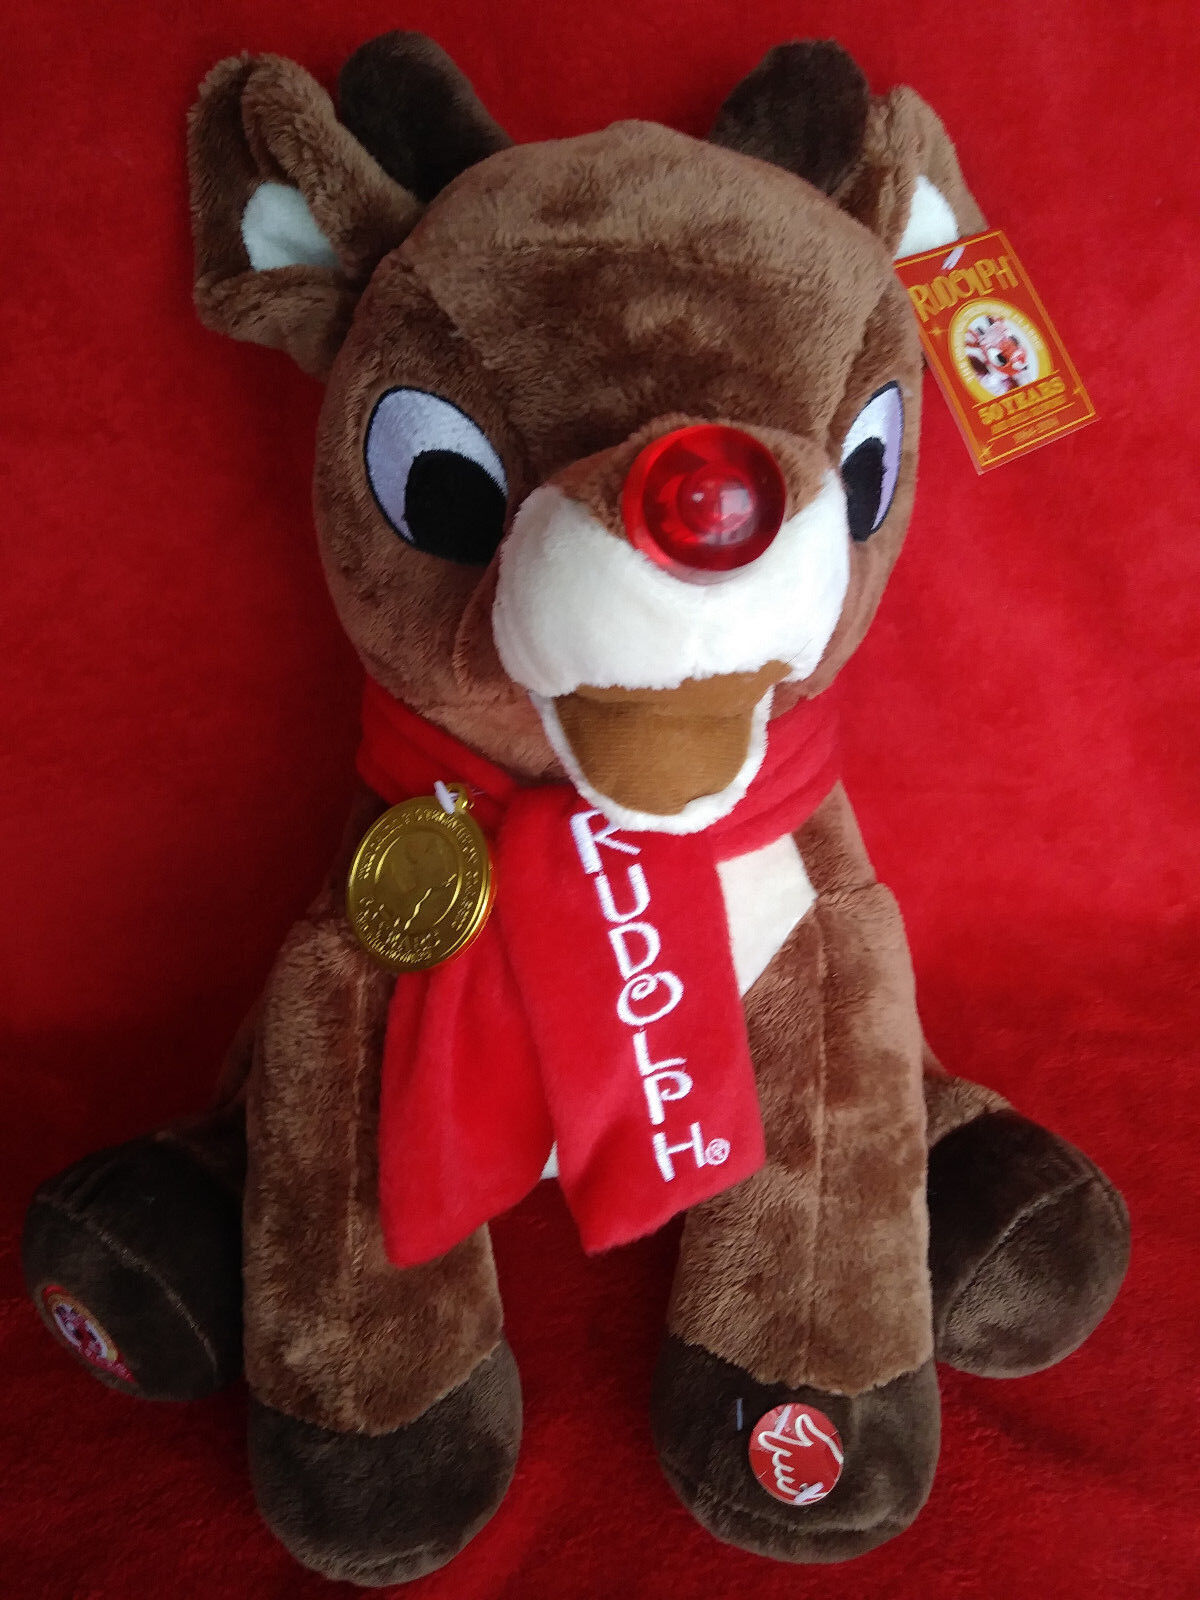 RUDOLPH RUDOLPH 15  Lighted Musical Plush DanDee 2014 rudolph misfit toys NEW